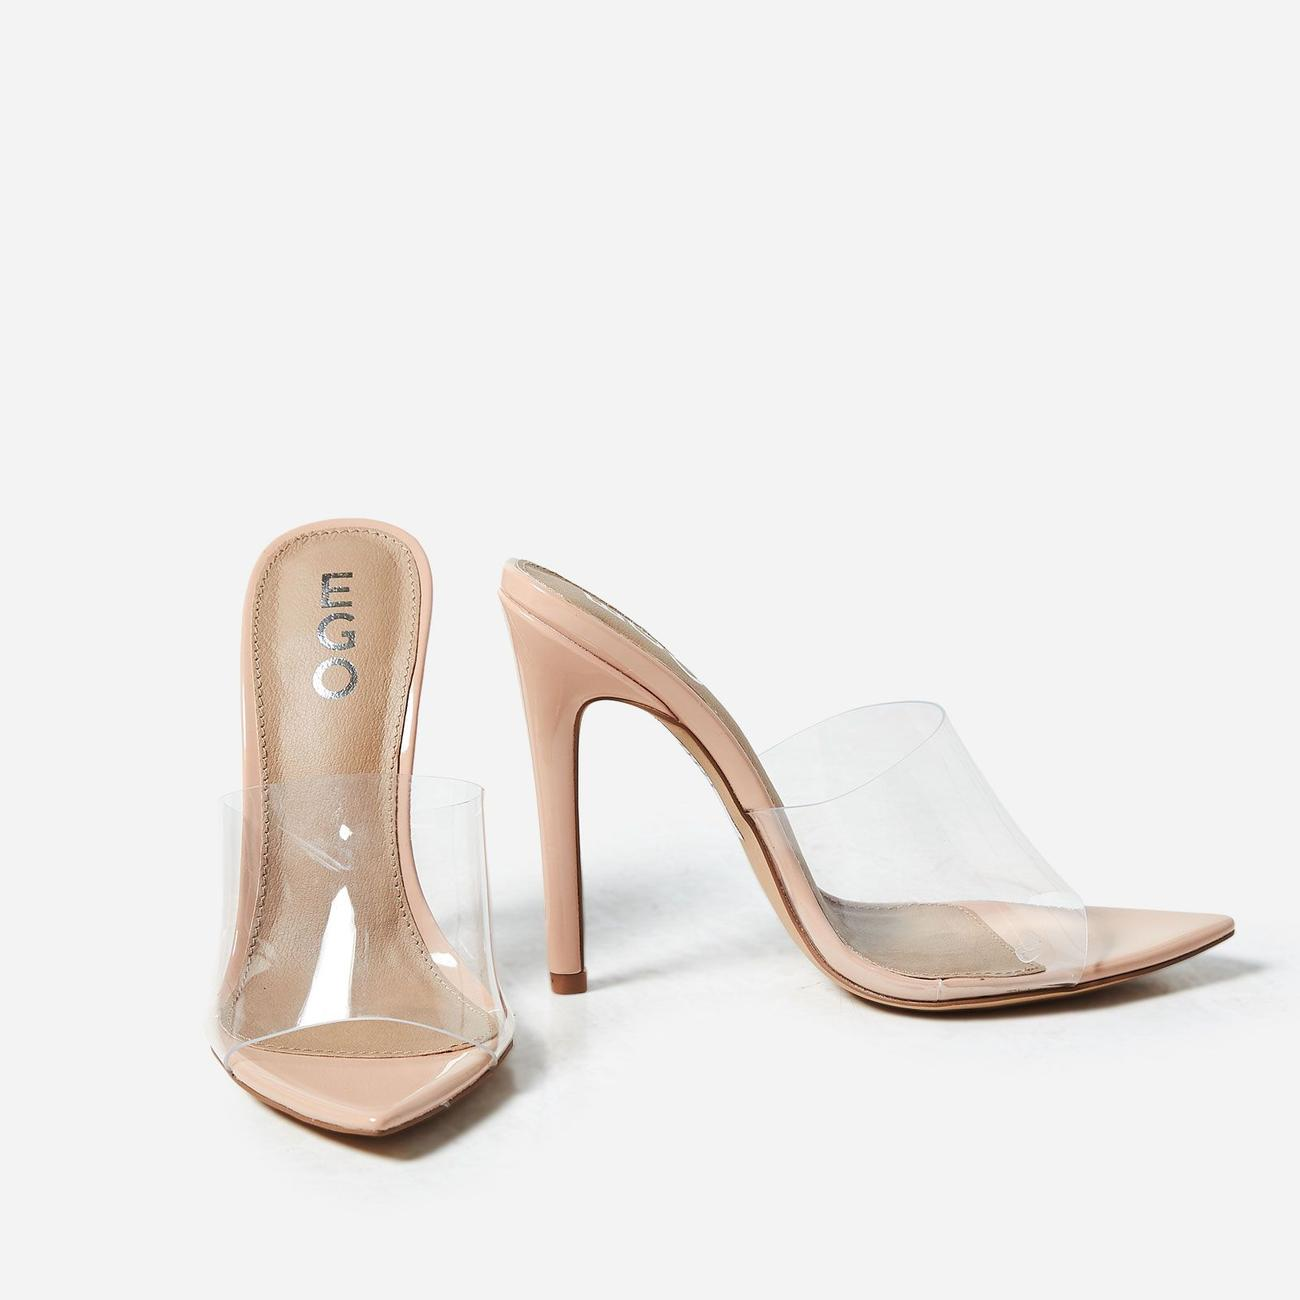 Pinup - Womens Glossy Nude Patent 4.5 Inch Mary Jane Heels